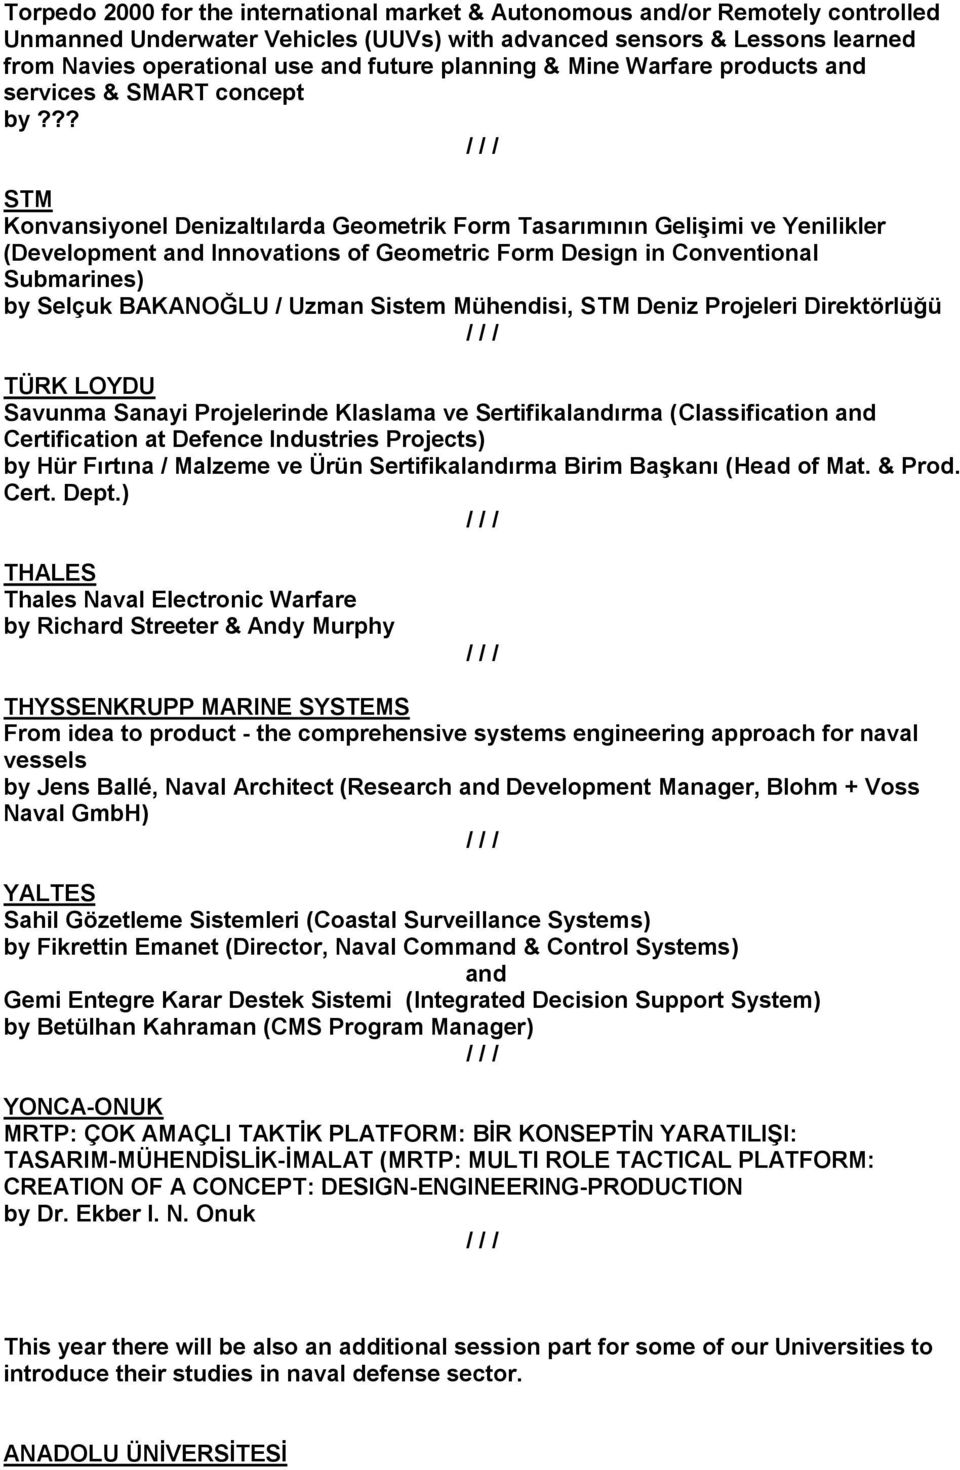 ?? STM Konvansiyonel Denizaltılarda Geometrik Form Tasarımının GeliĢimi ve Yenilikler (Development Innovations of Geometric Form Design in Conventional Submarines) by Selçuk BAKANOĞLU / Uzman Sistem